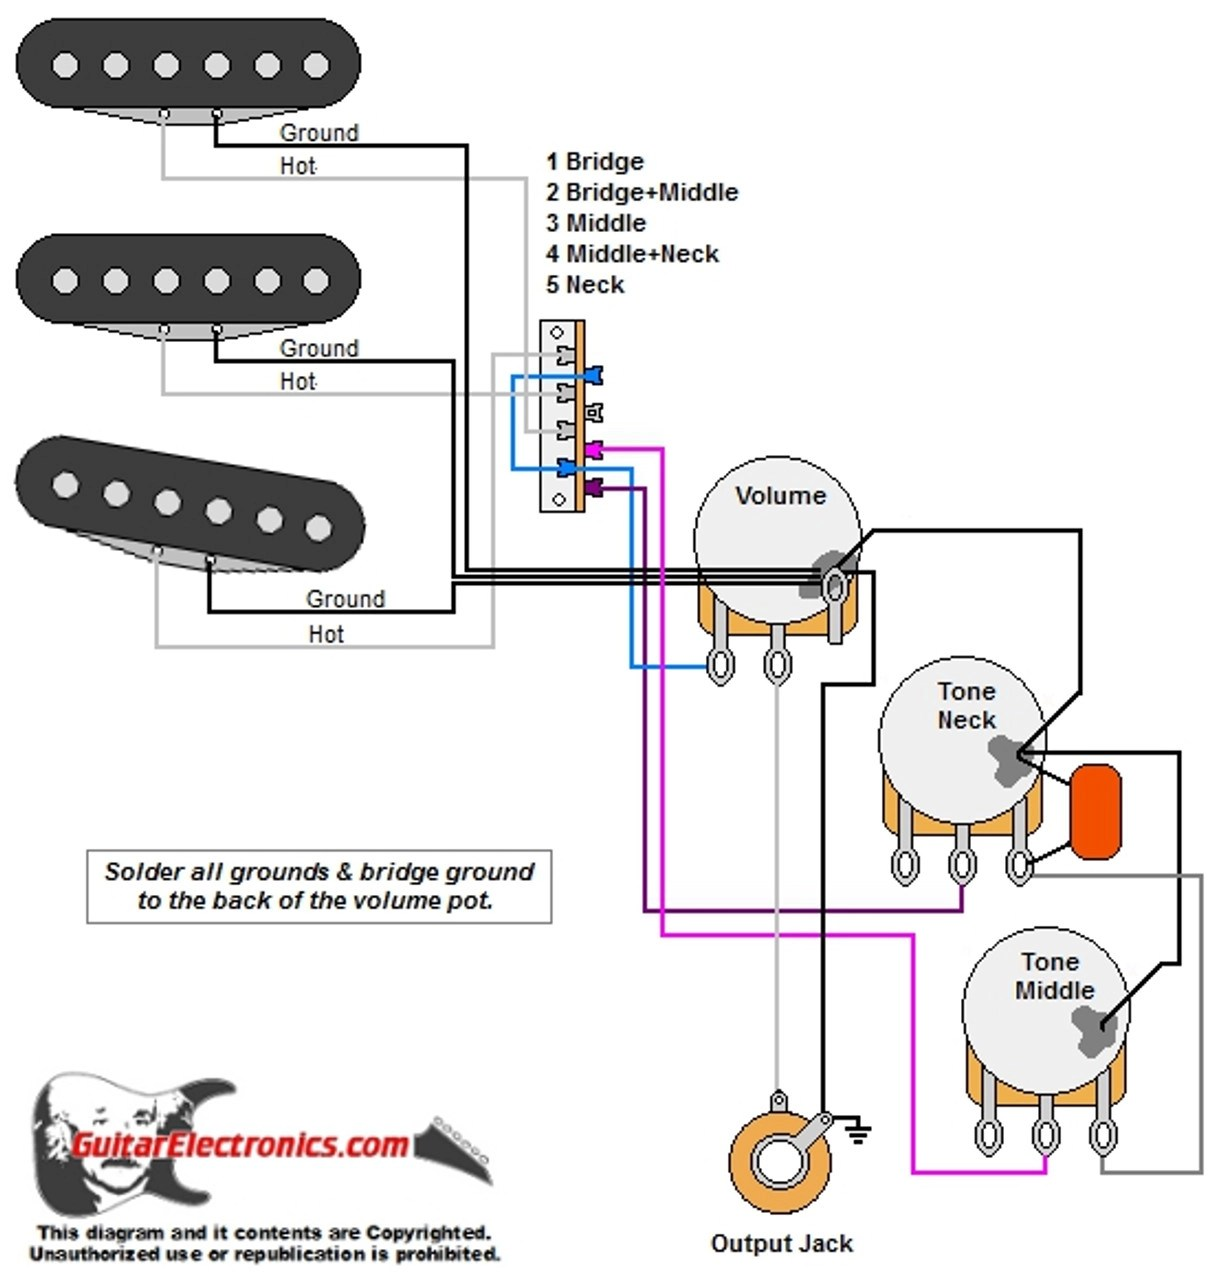 hight resolution of starcaster by fender wiring diagram wiring diagram recentstarcaster by fender wiring diagram wiring diagram img starcaster